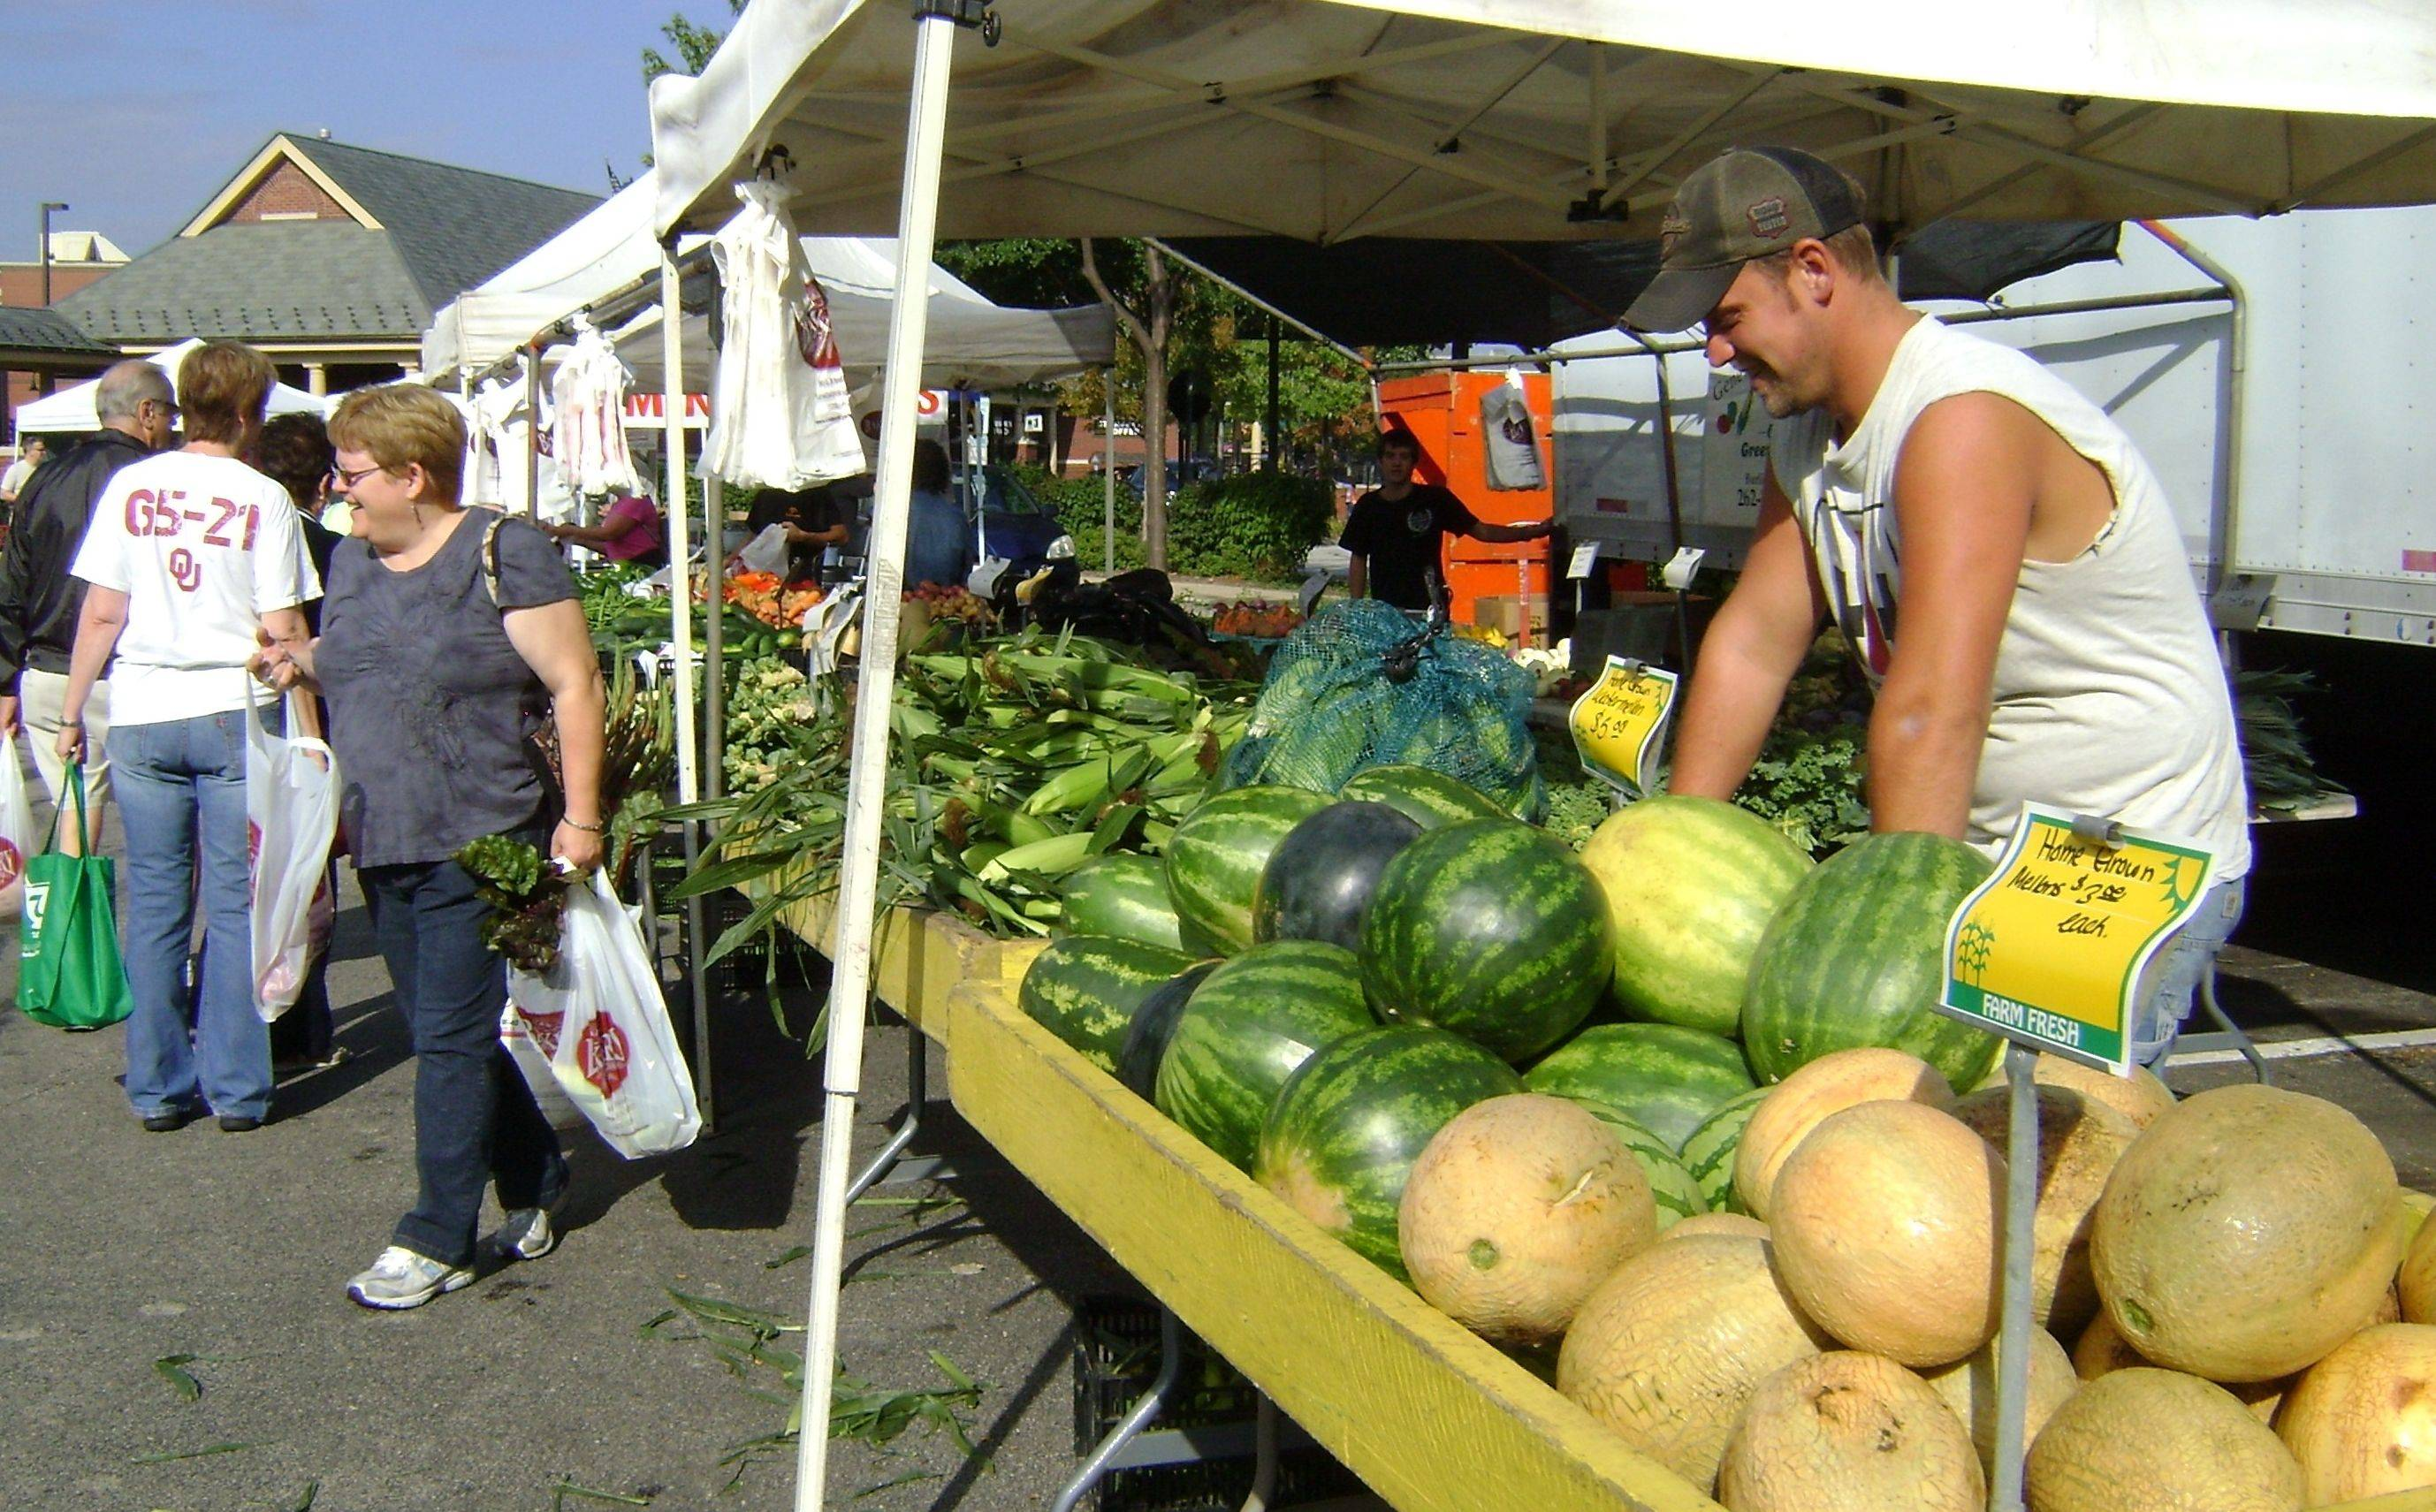 Sweet corn, watermelon and cantaloupe are common staples of the suburban farmers market scene.